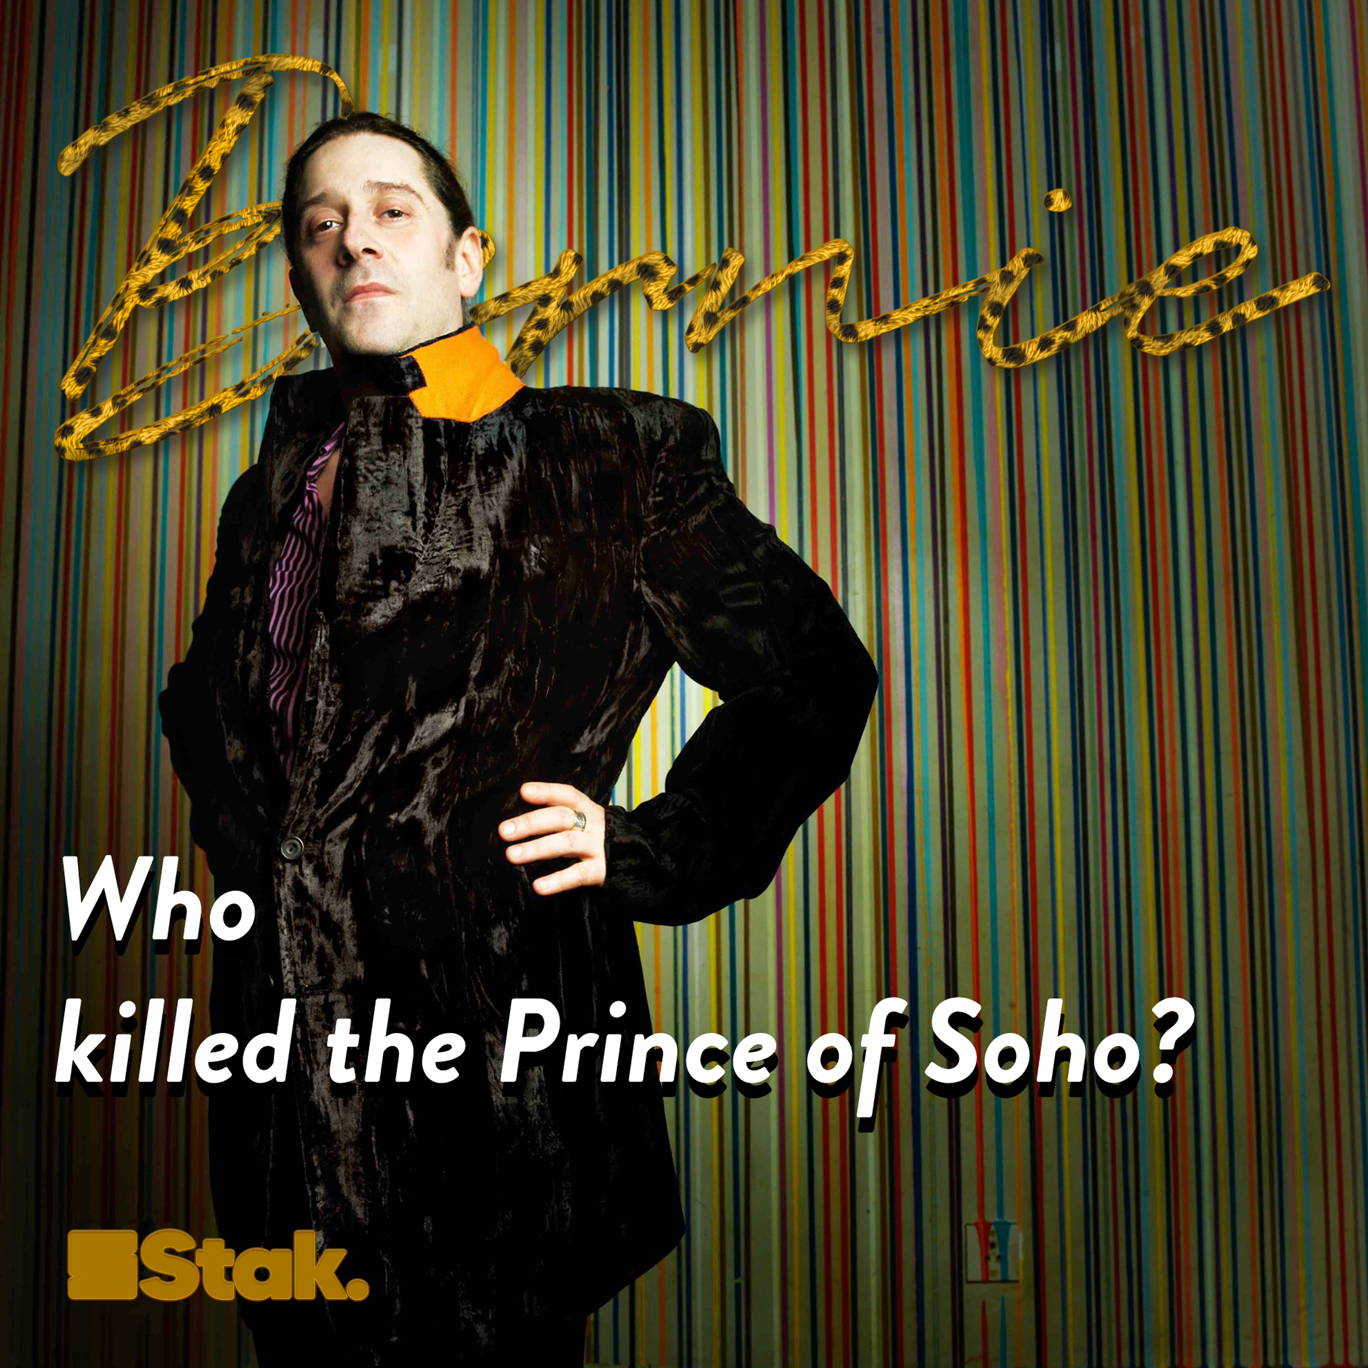 The artwork for the Bernie: Who killed the Prince of Soho? podcast.